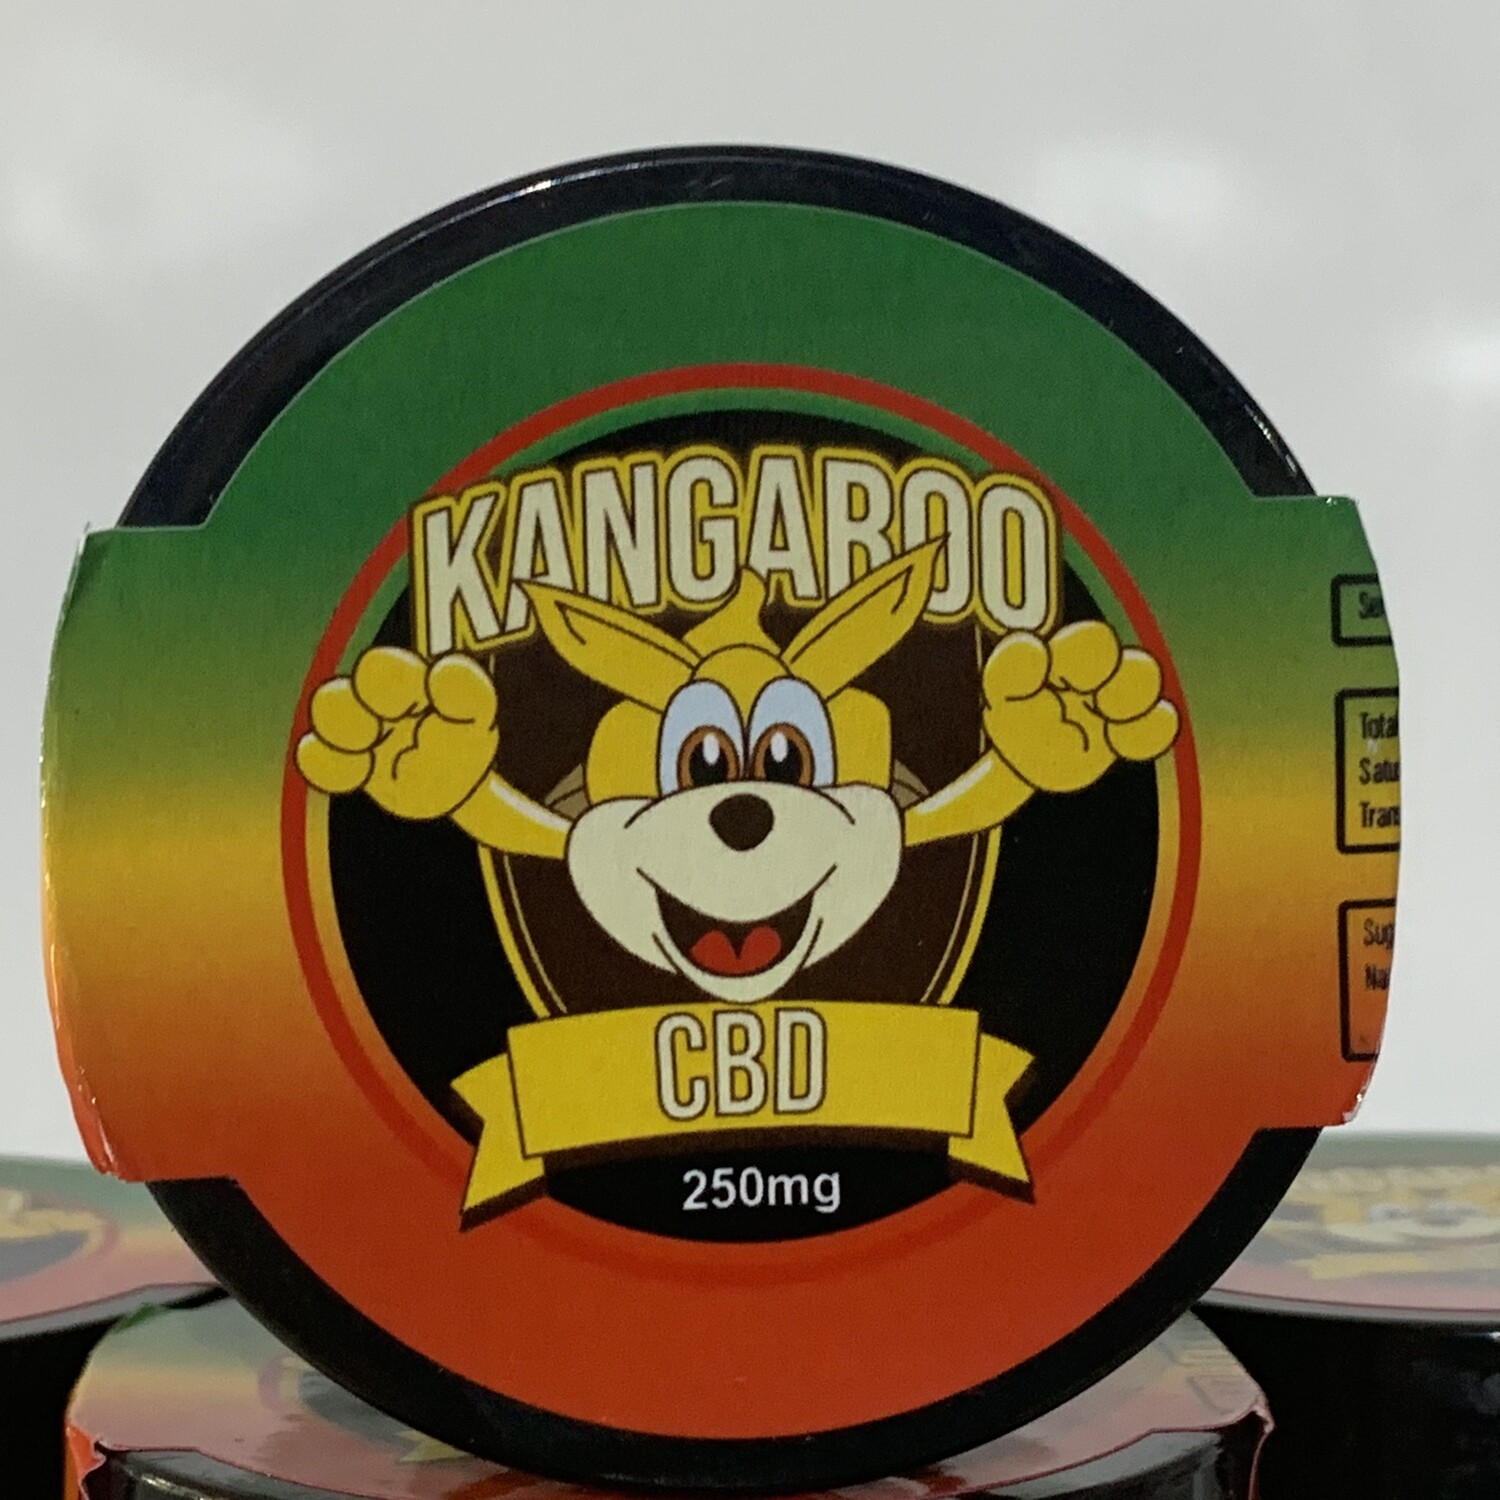 Kangaroo CBD 250mg Gummies